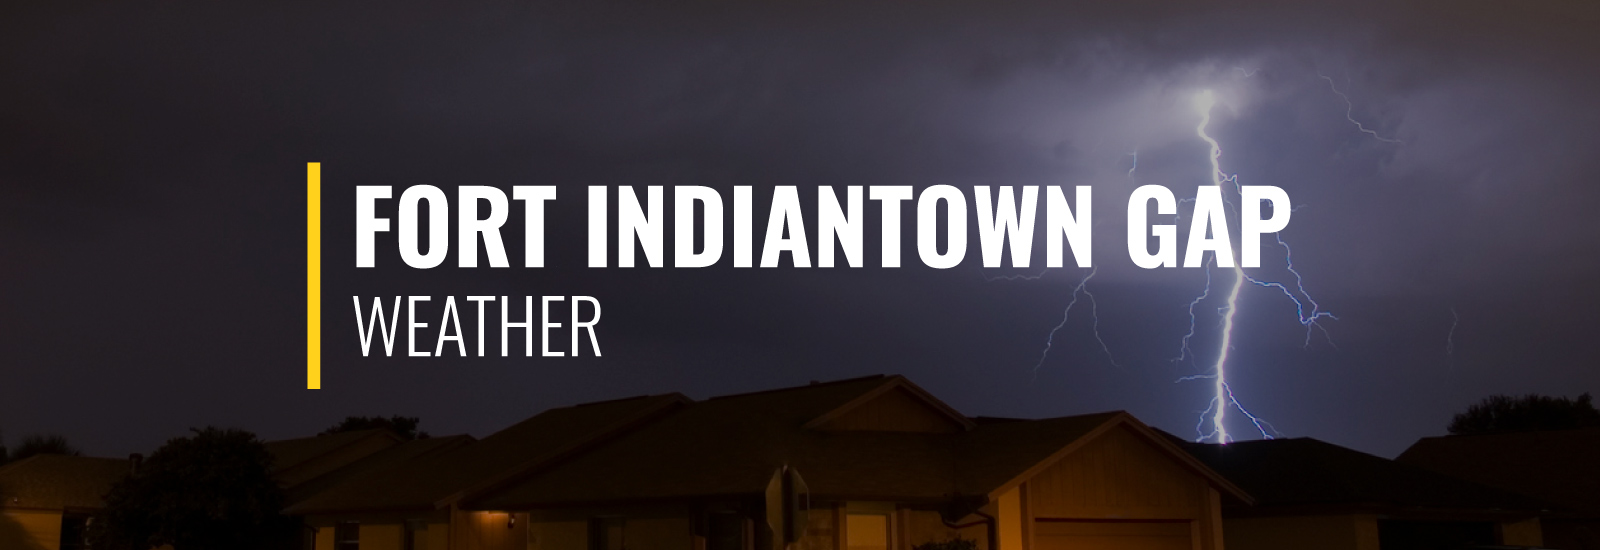 Fort Indiantown Gap Weather